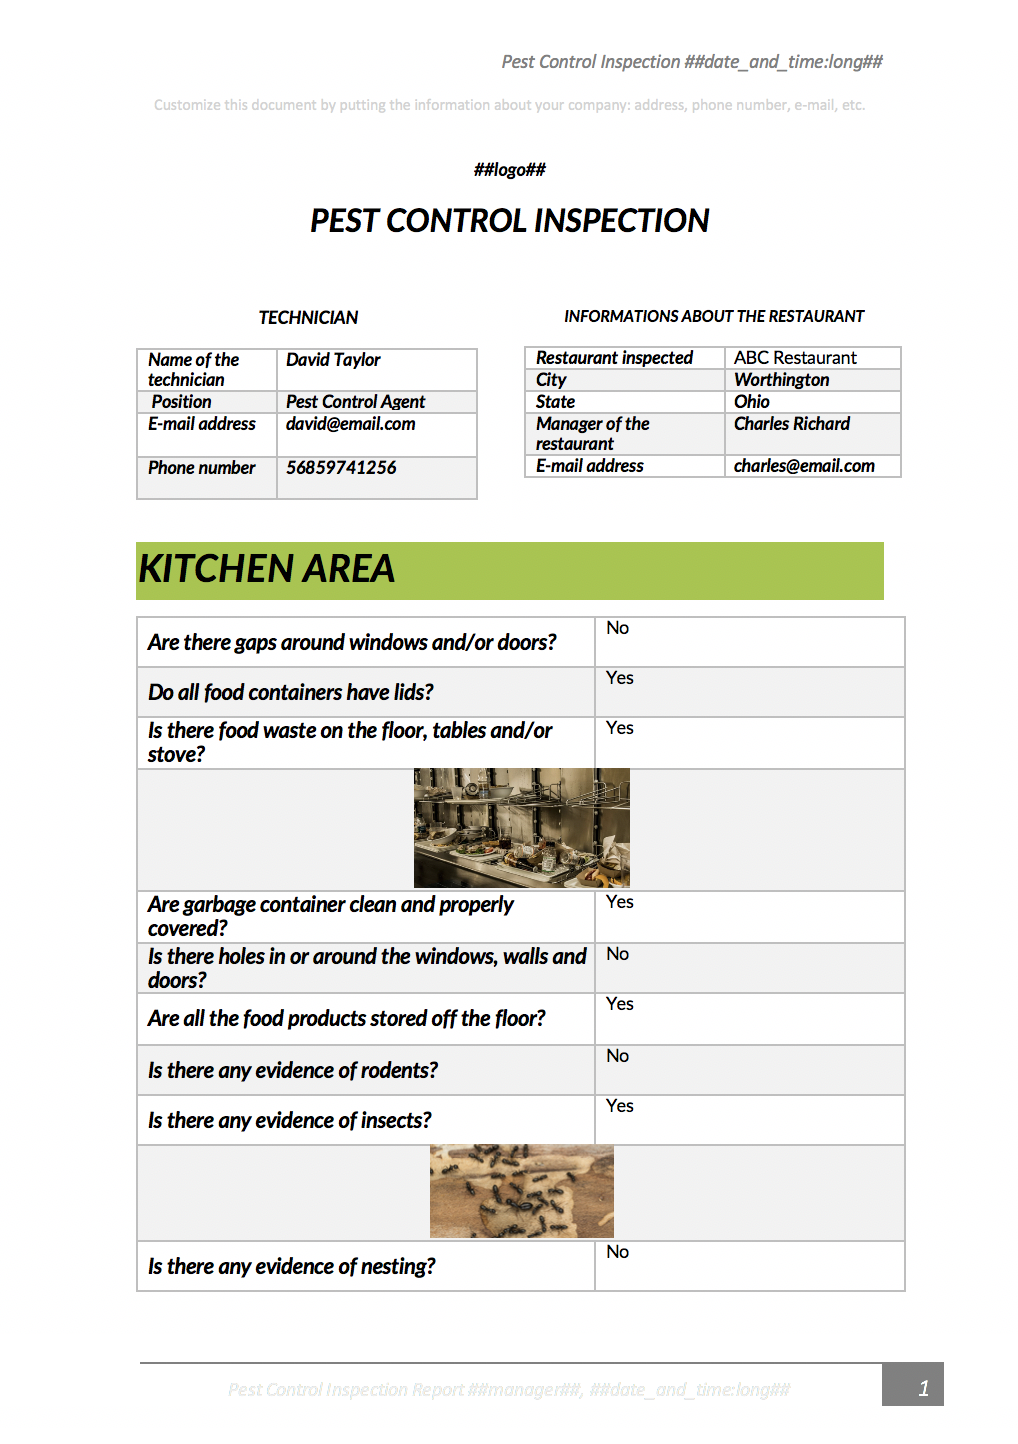 Pest control inspection report example with Kizeo Forms